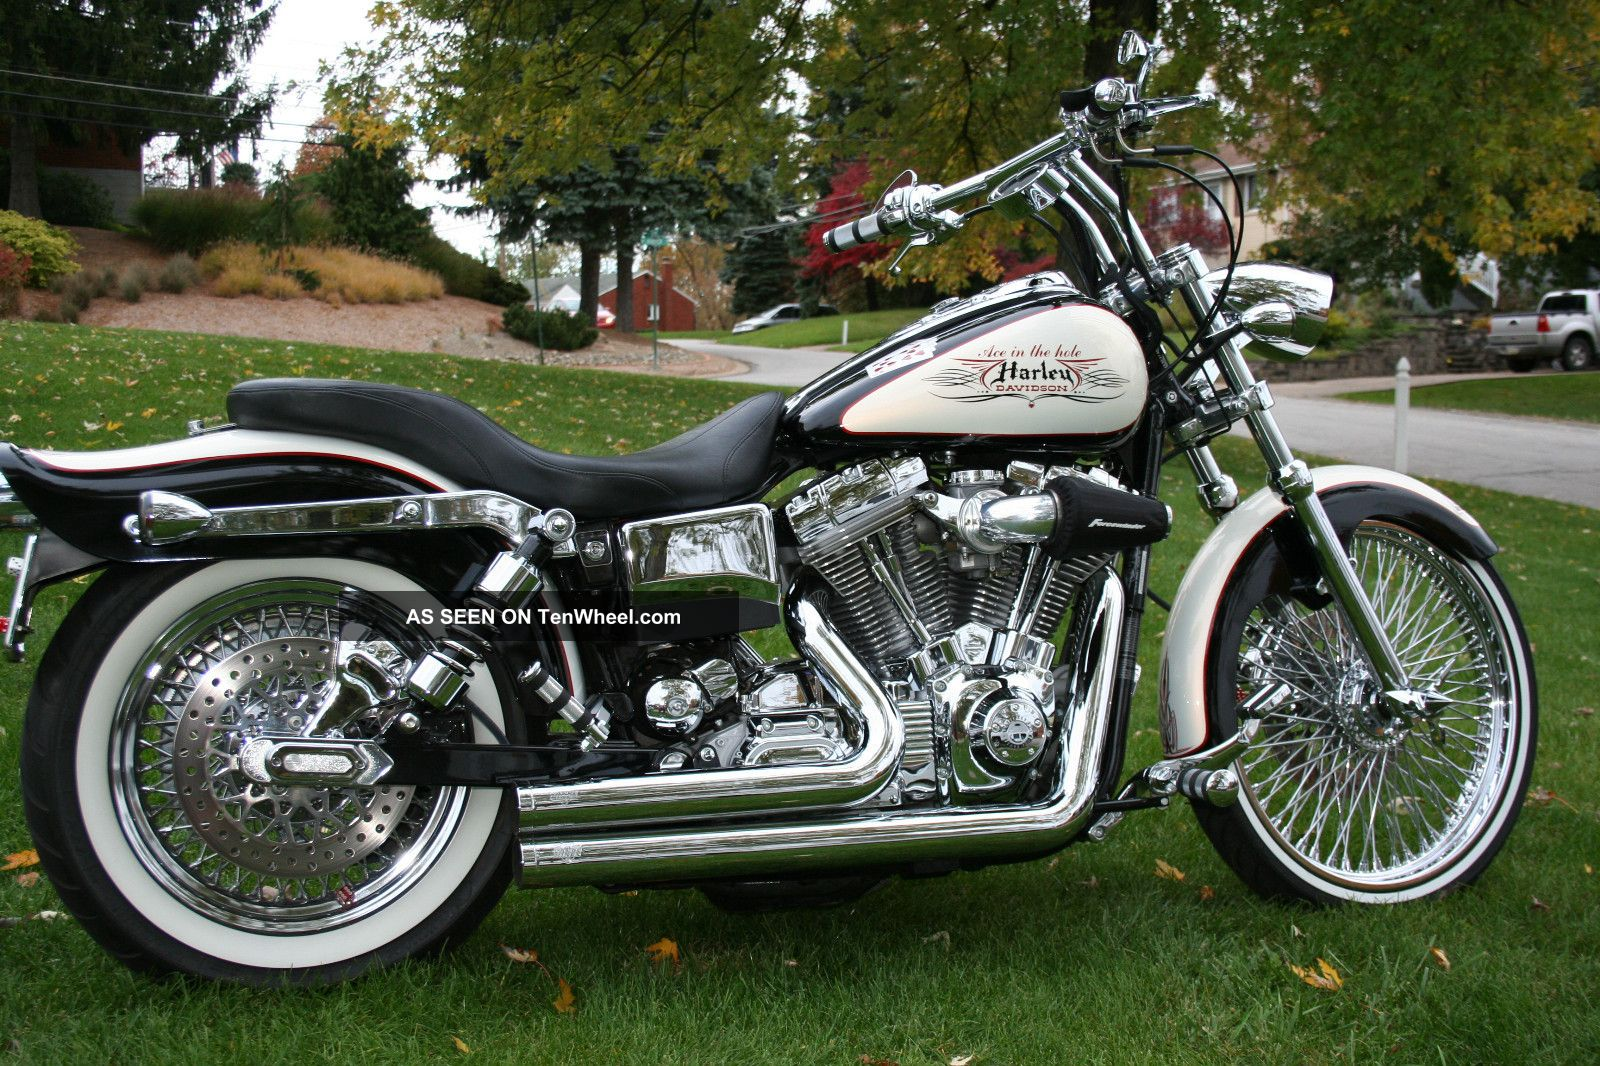 2012 Ford Harley Davidson Specsharley Engine Torque Specs 2004 F 150 Customized Dyna Superglide Fxd